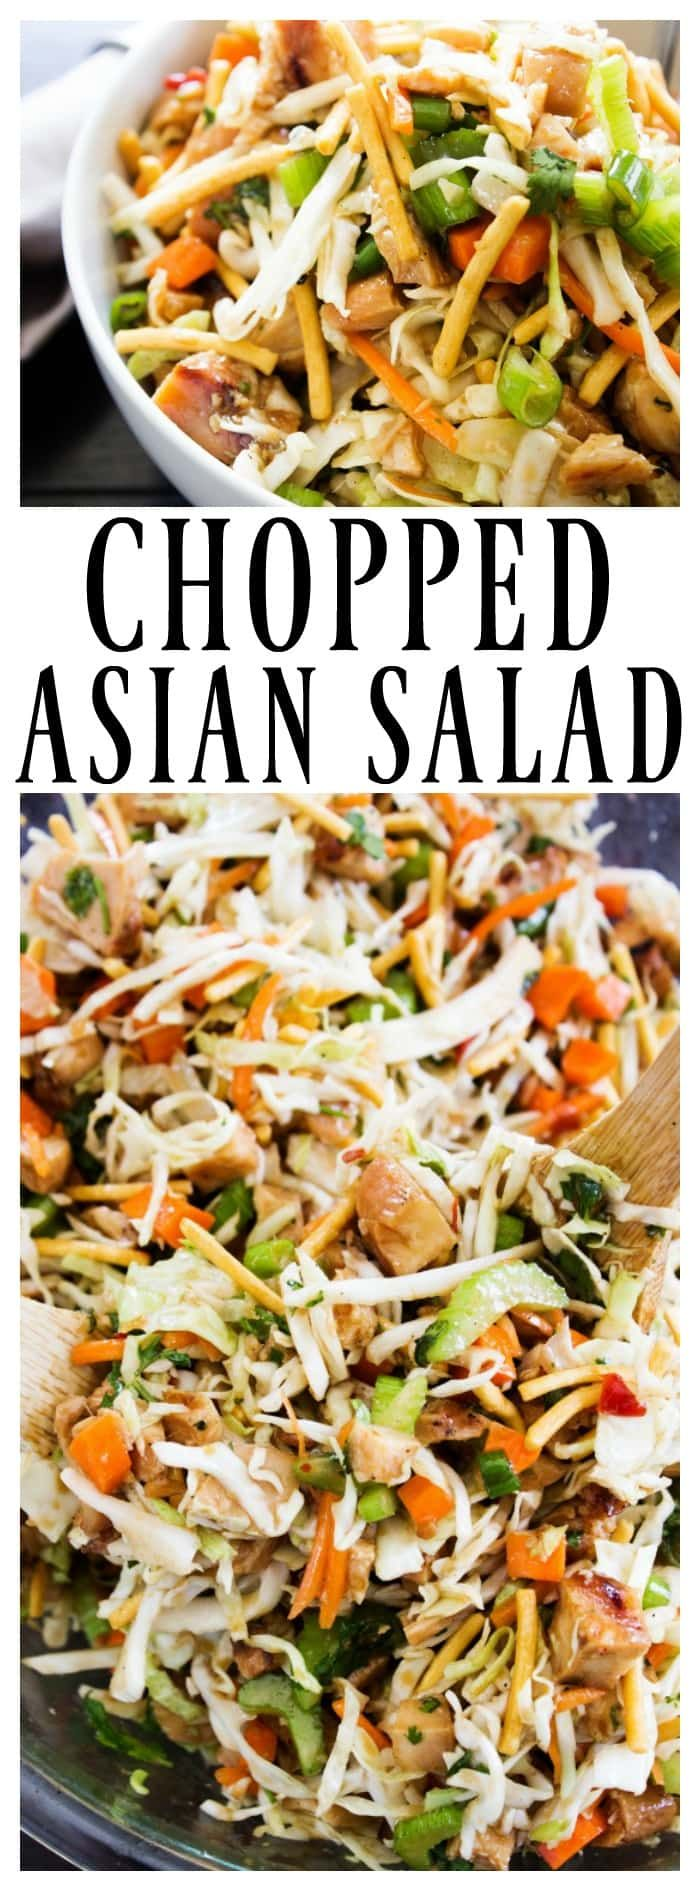 CHOPPED ASIAN SALAD.  Sub almonds or peanuts for chow mein noodles; use on plan sweetener in dressing